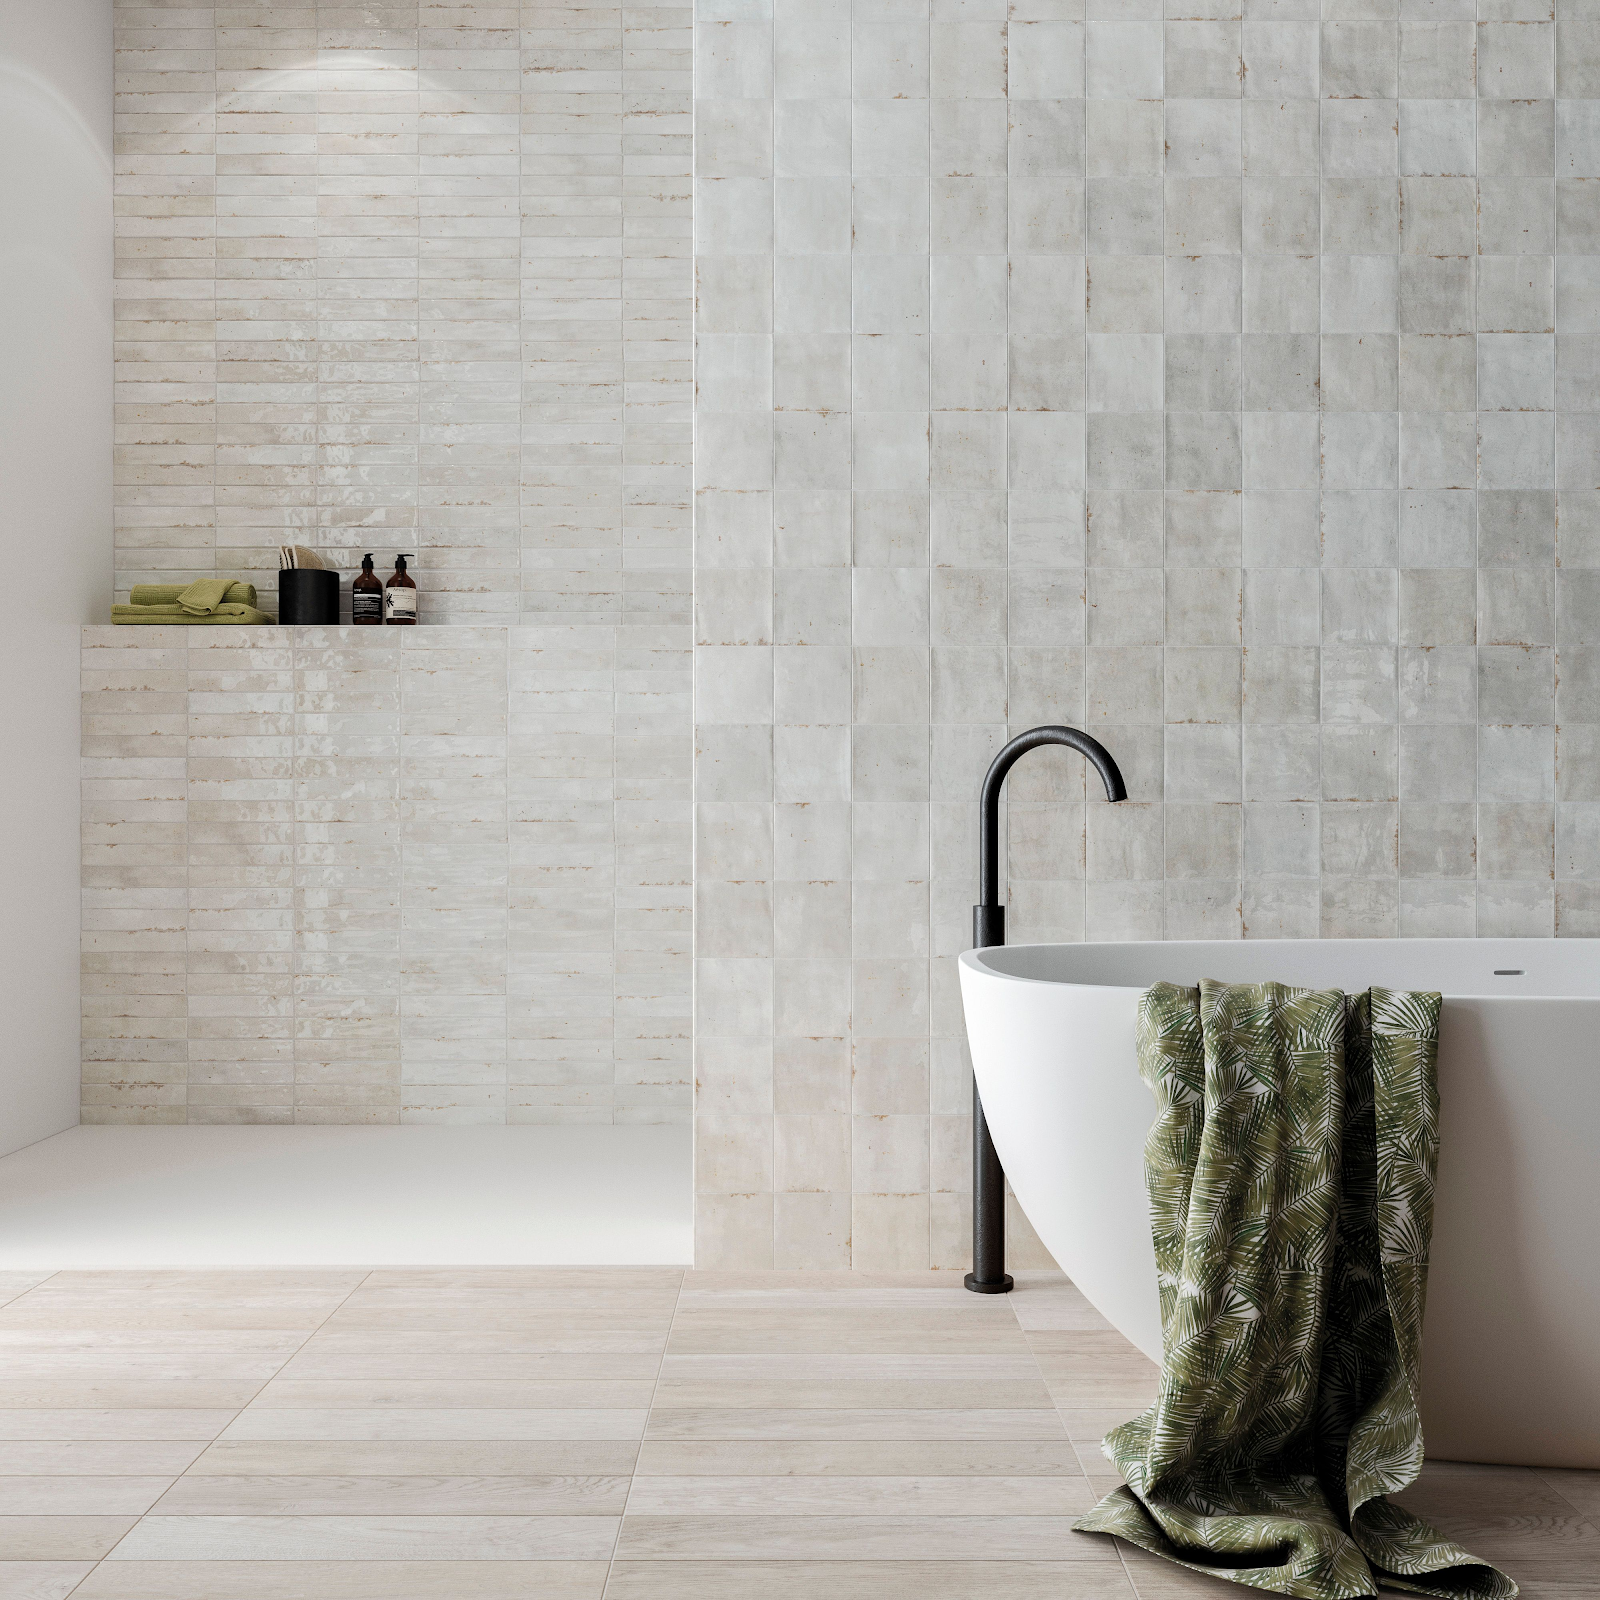 Textured white tile walls in a bathroom and shower